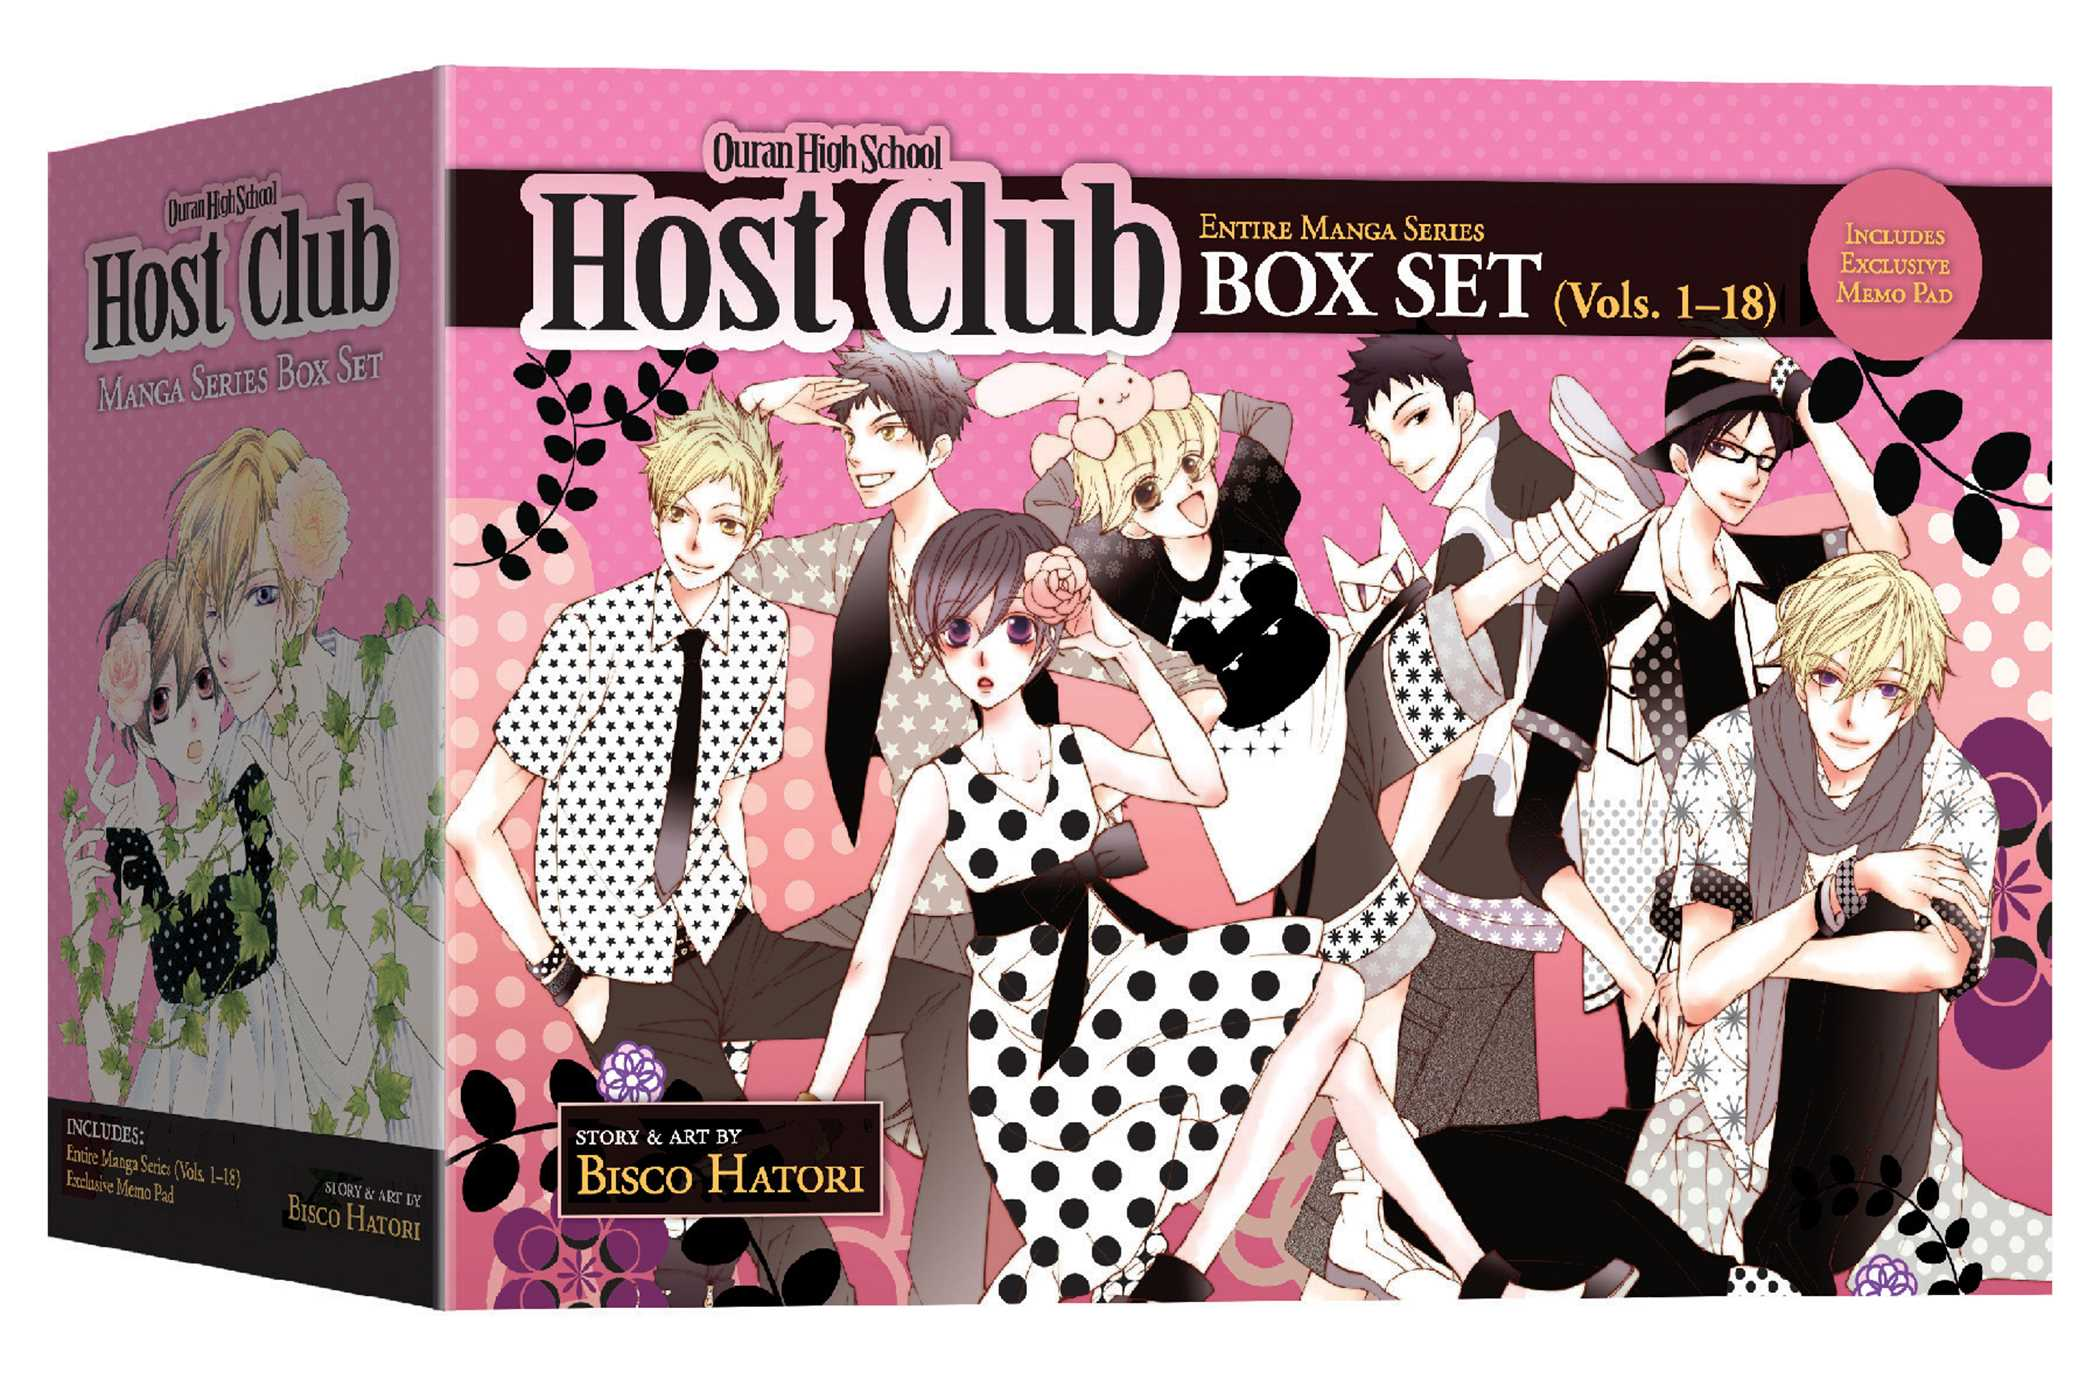 Ouran high school host club box set 9781421550787 hr